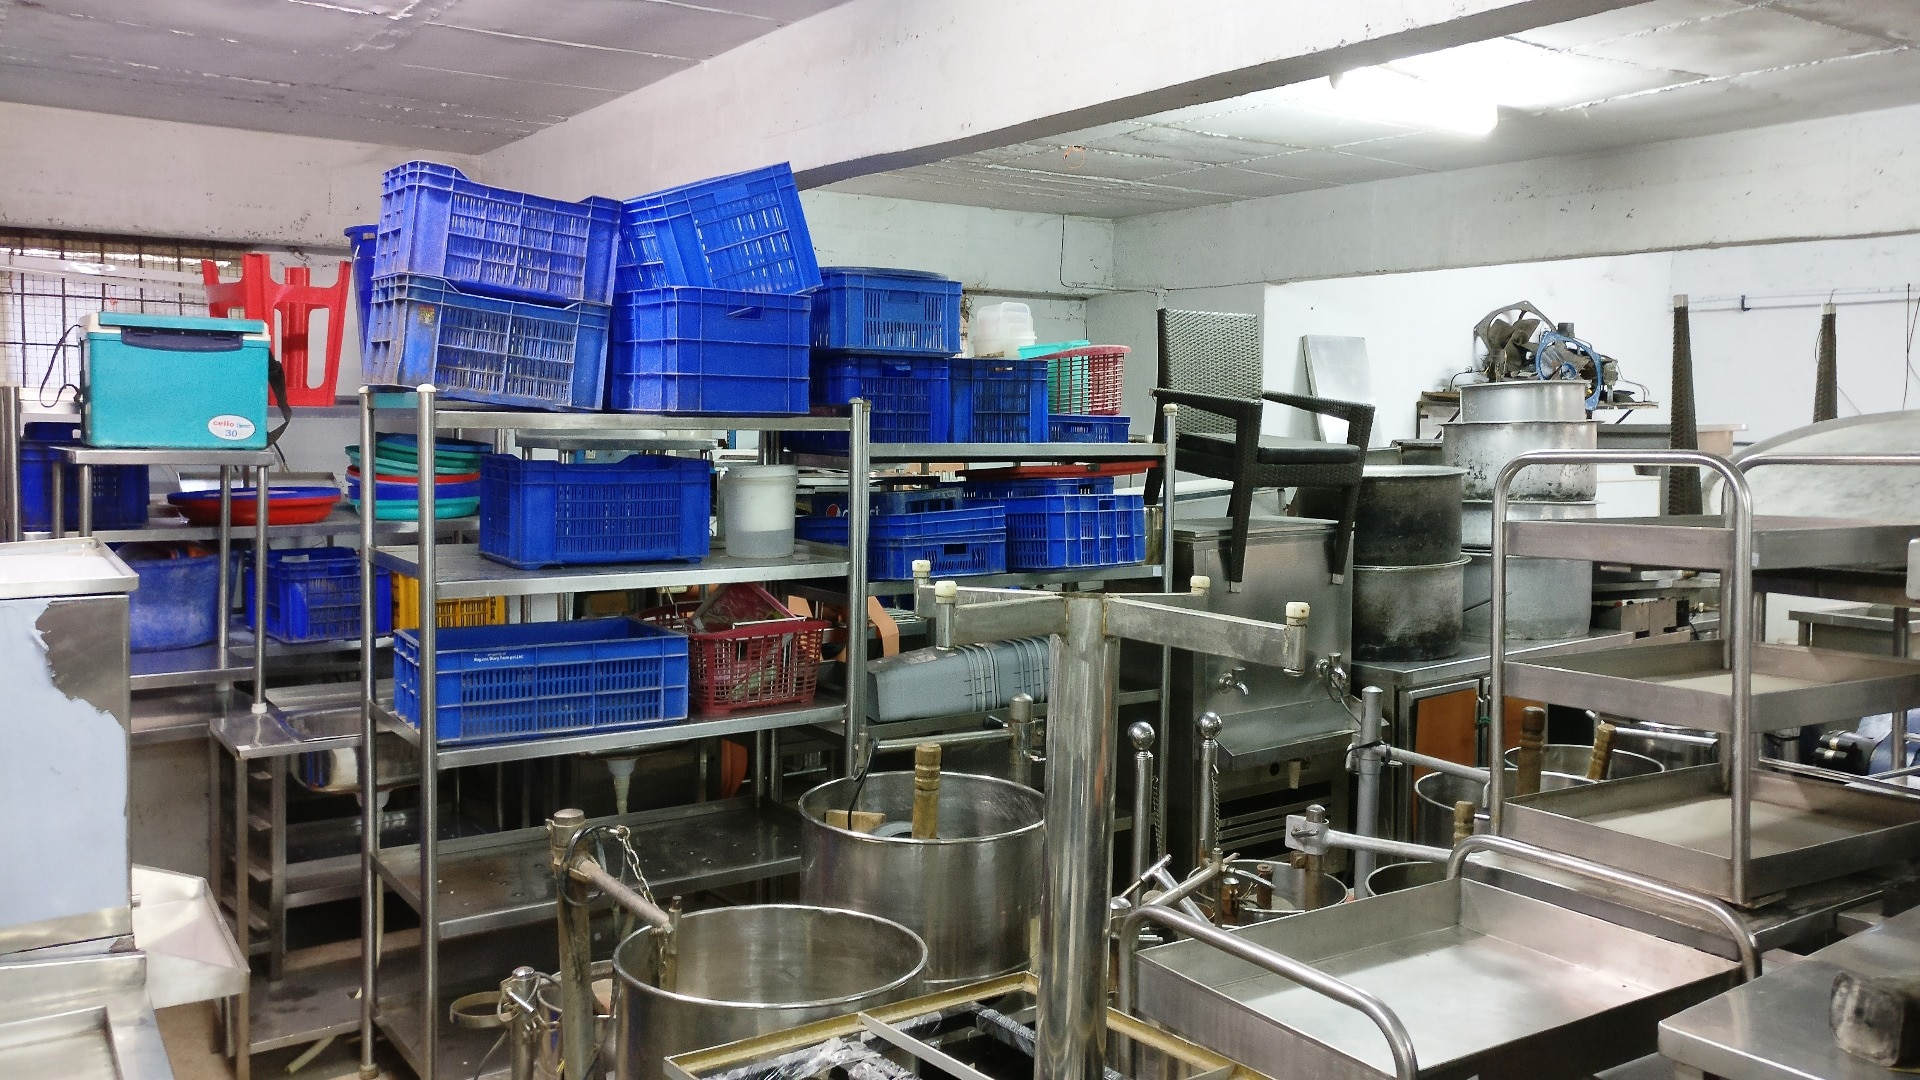 used commercial kitchen equipment buyers country range hoods bangalore equipments in